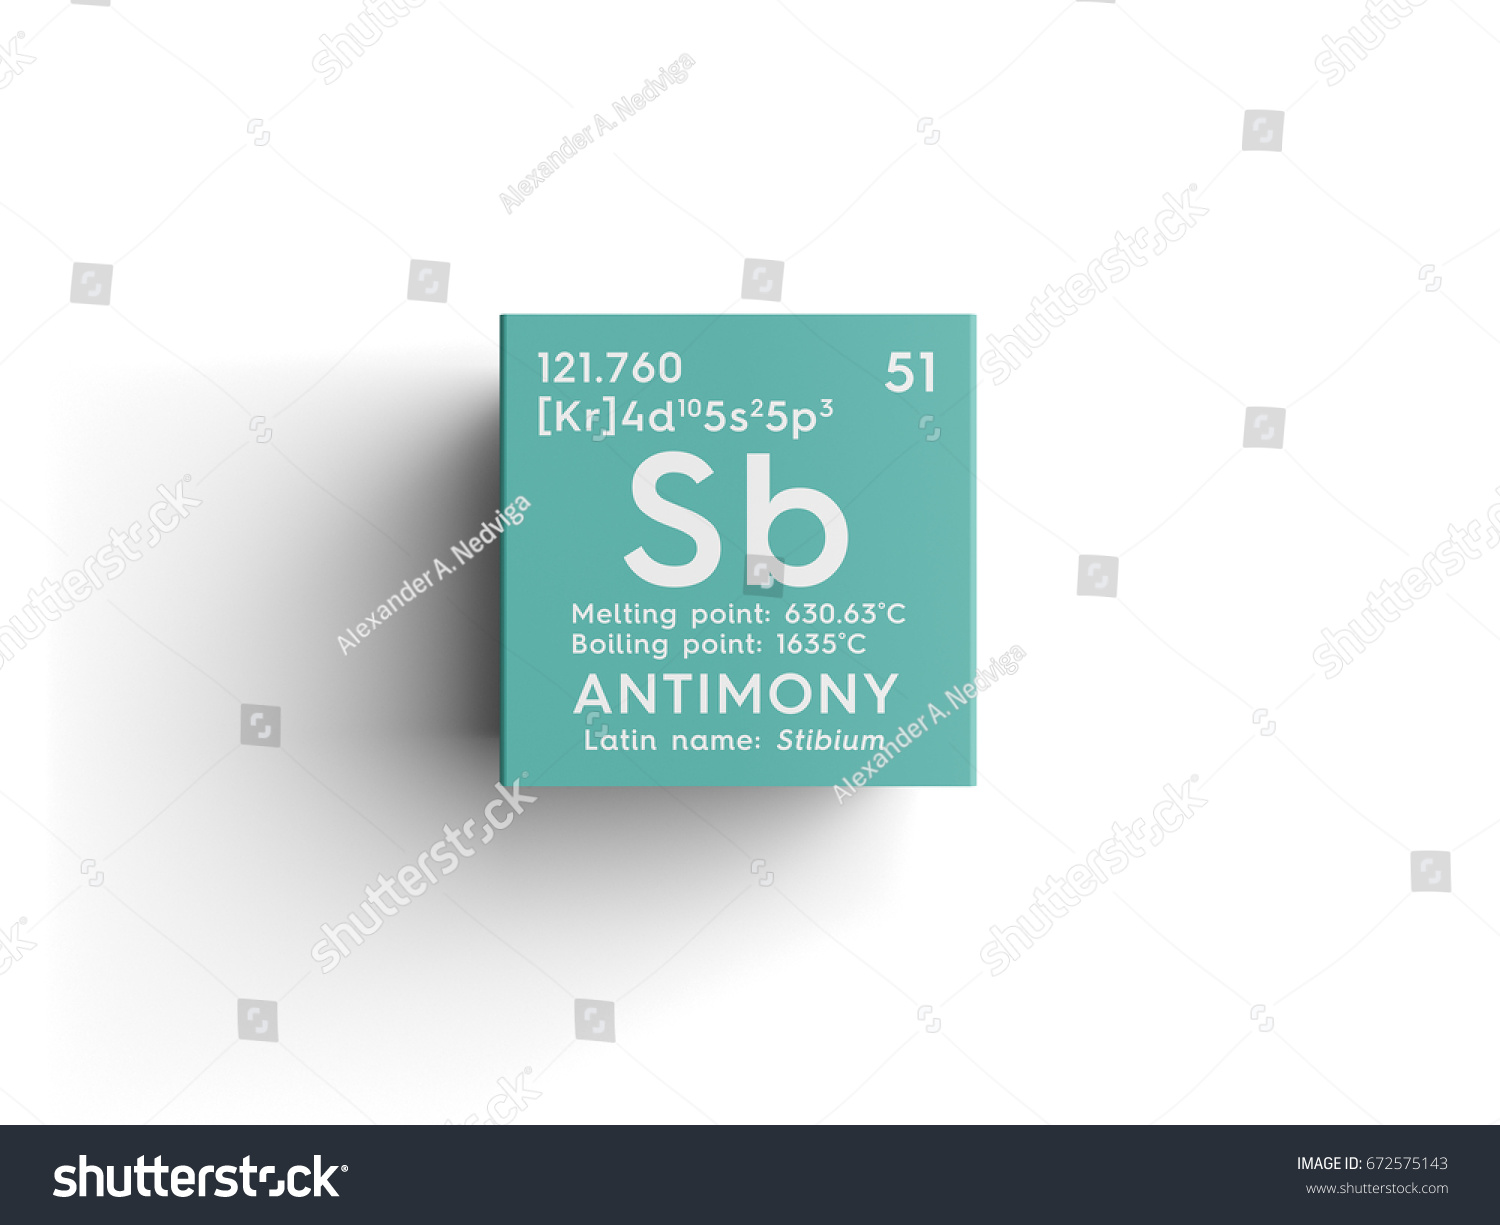 Periodic table antimony images periodic table images periodic table antimony gallery periodic table images periodic table antimony choice image periodic table images periodic gamestrikefo Choice Image